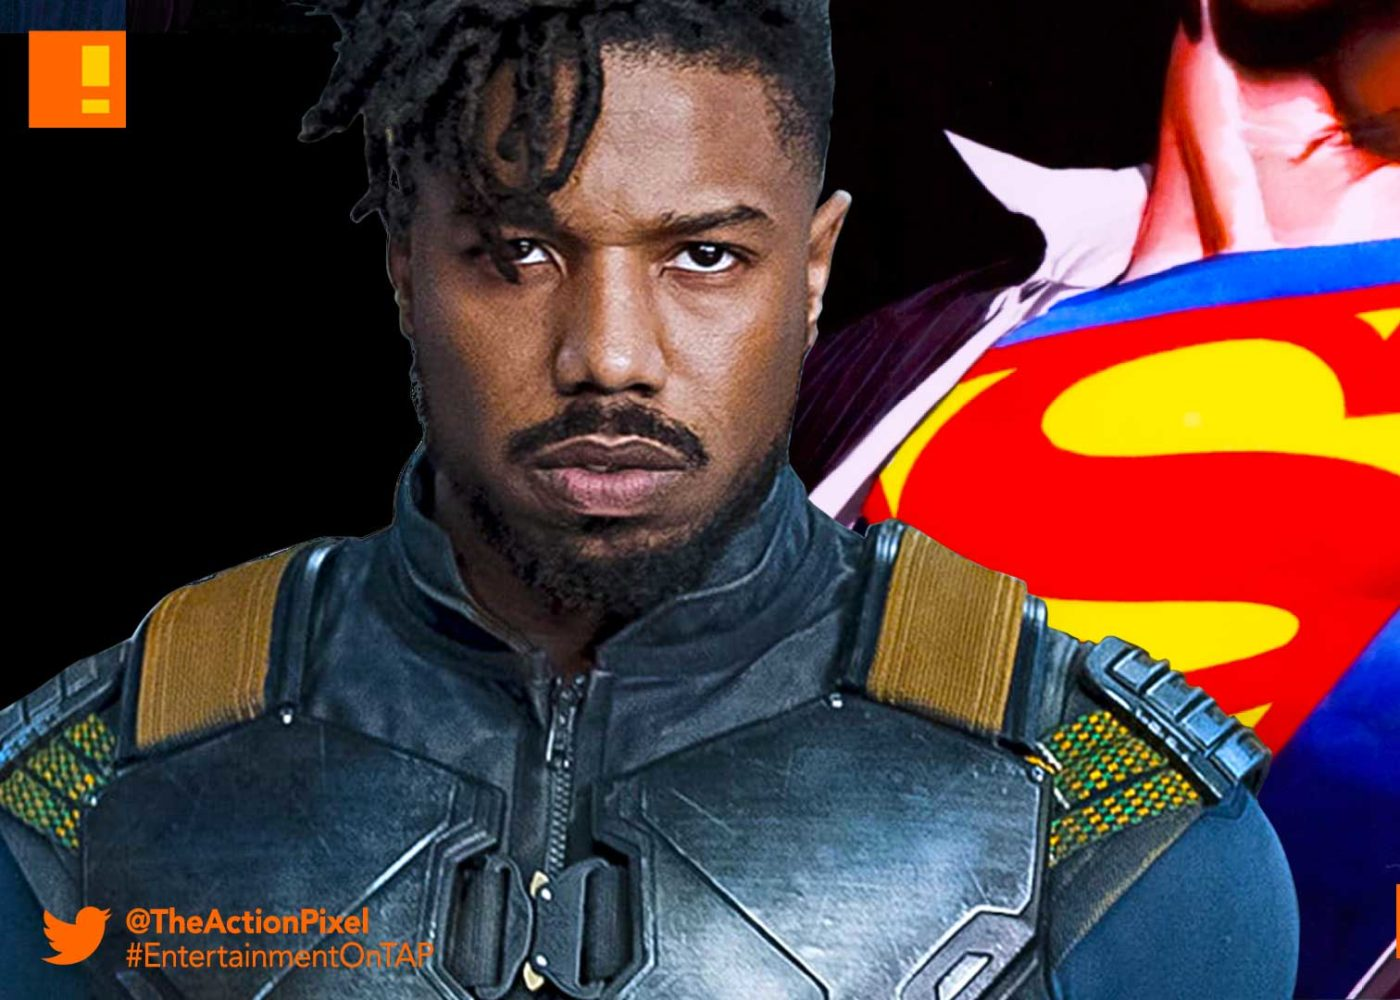 michael b jordan, dc comics, Superman, dceu, superman movie, casting, the action pixel, entertainment on tap